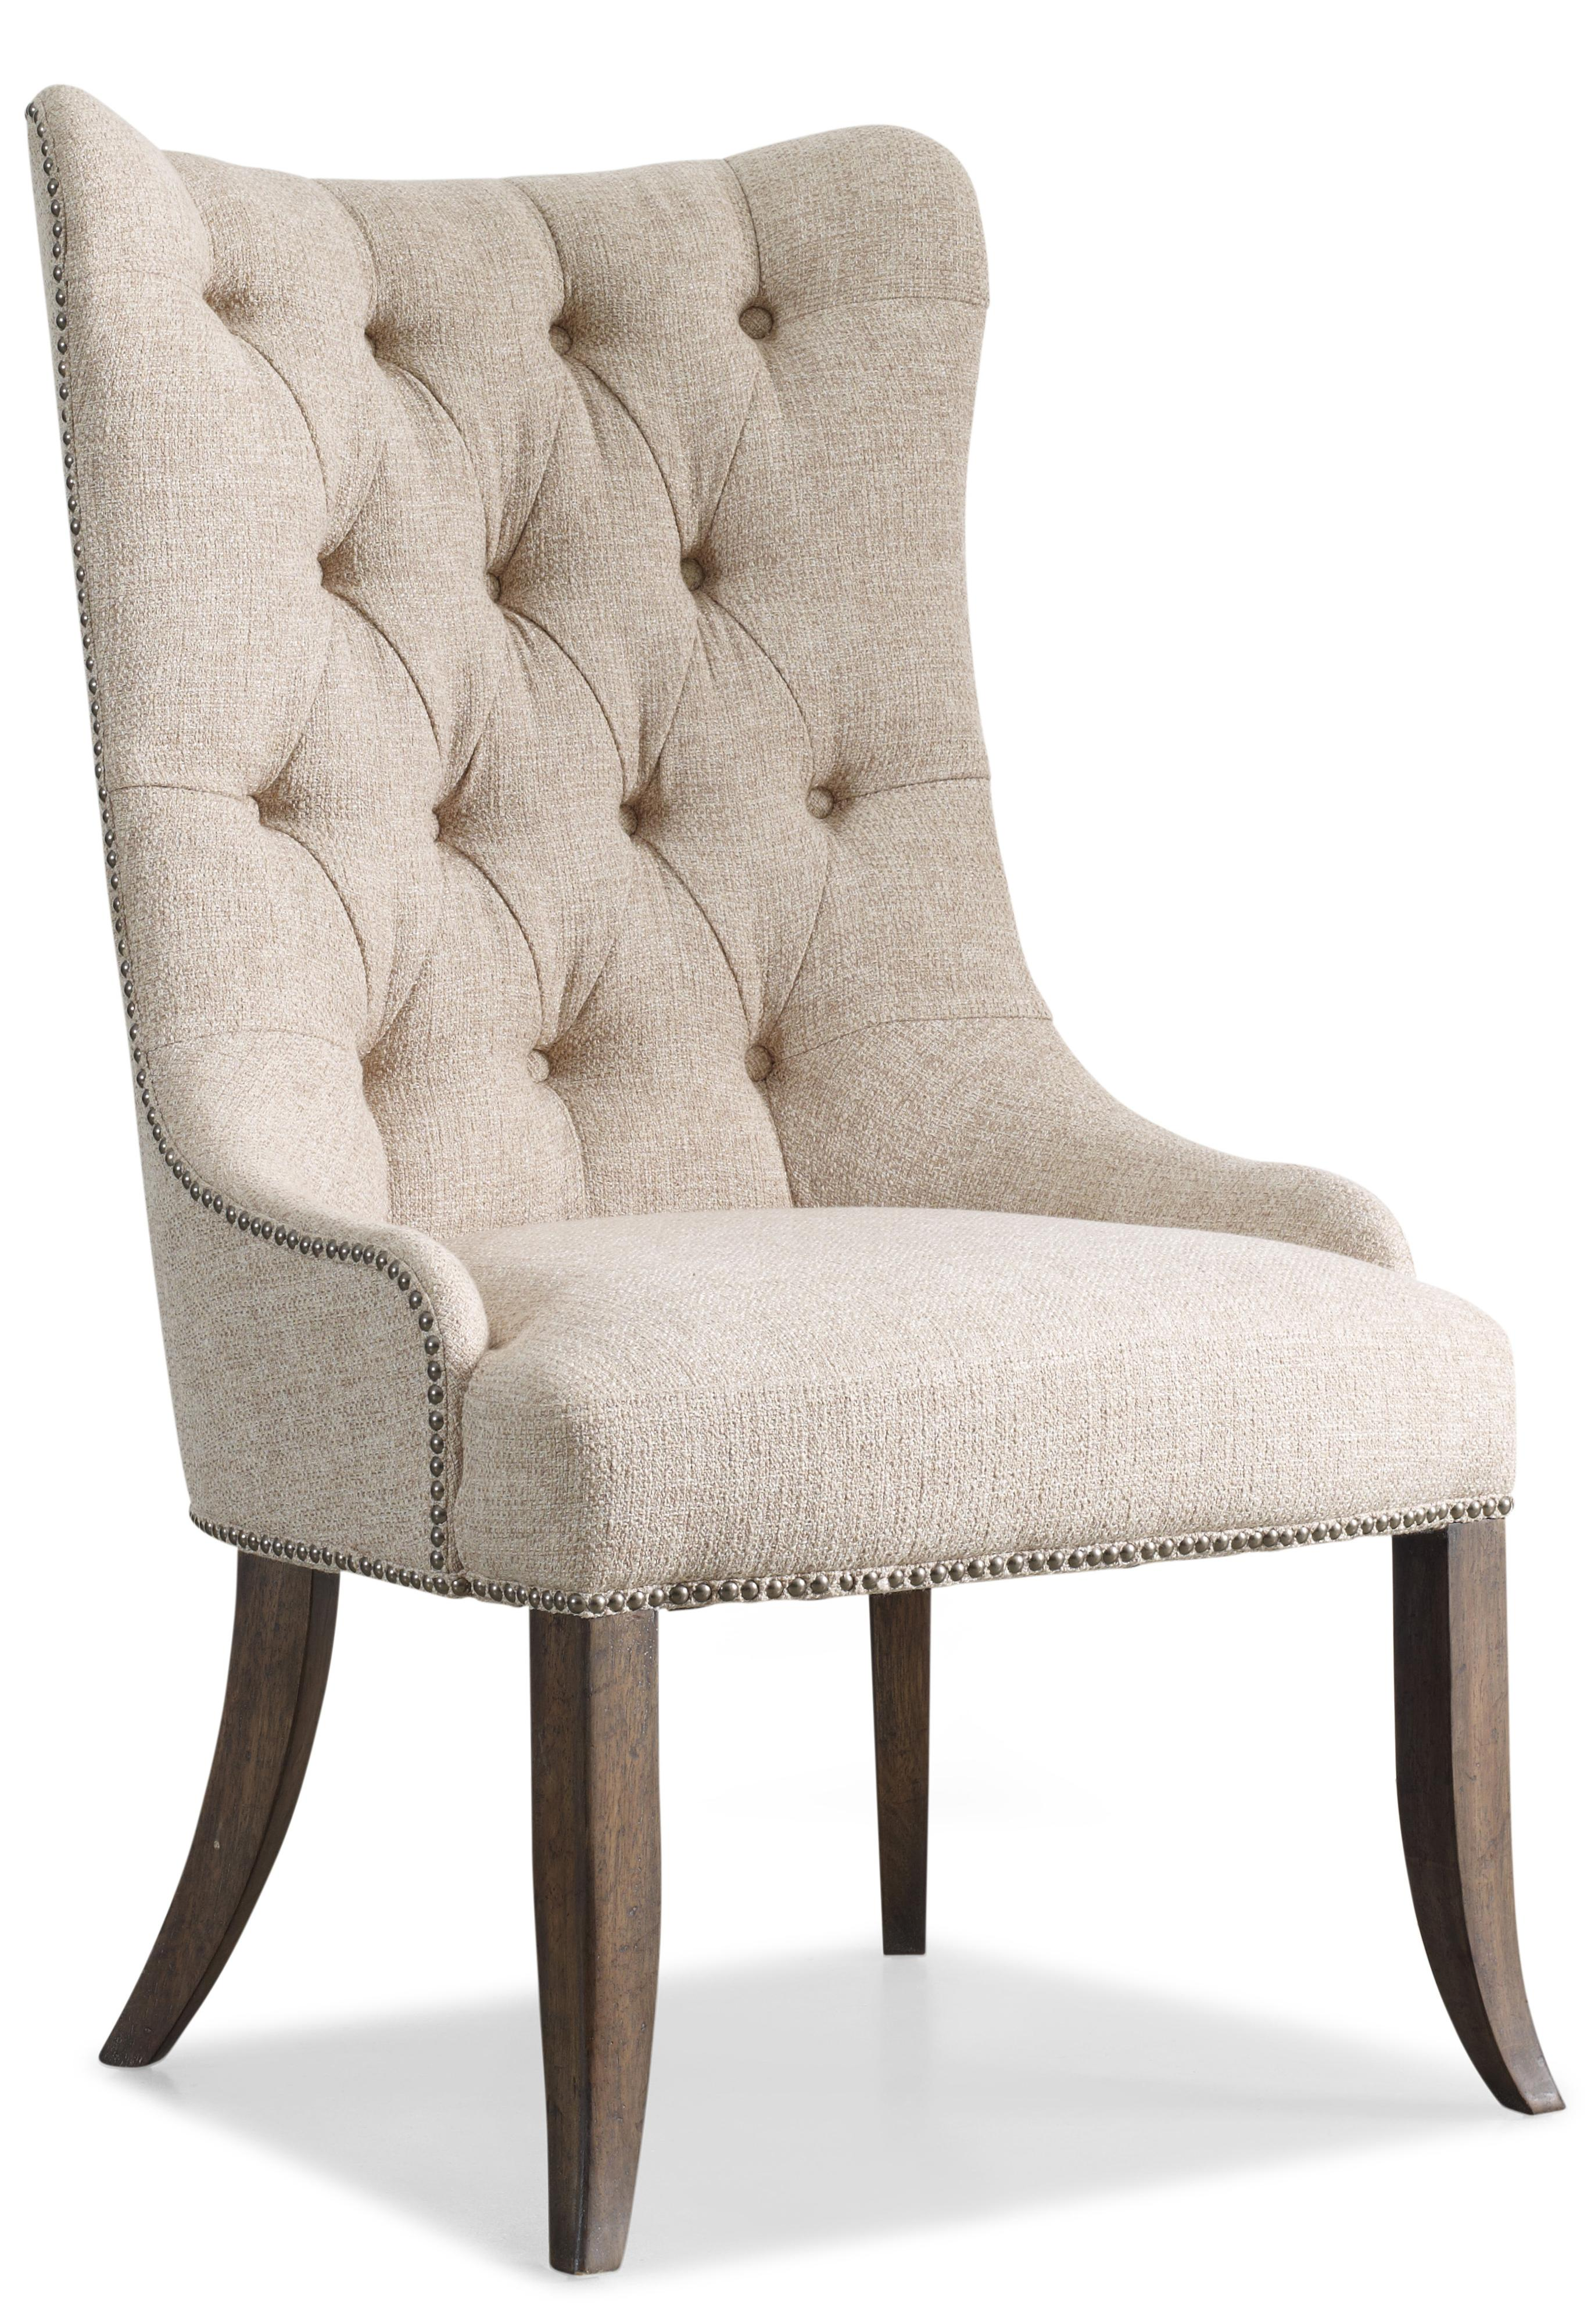 Hooker Furniture Rhapsody Transitional Button Tufted